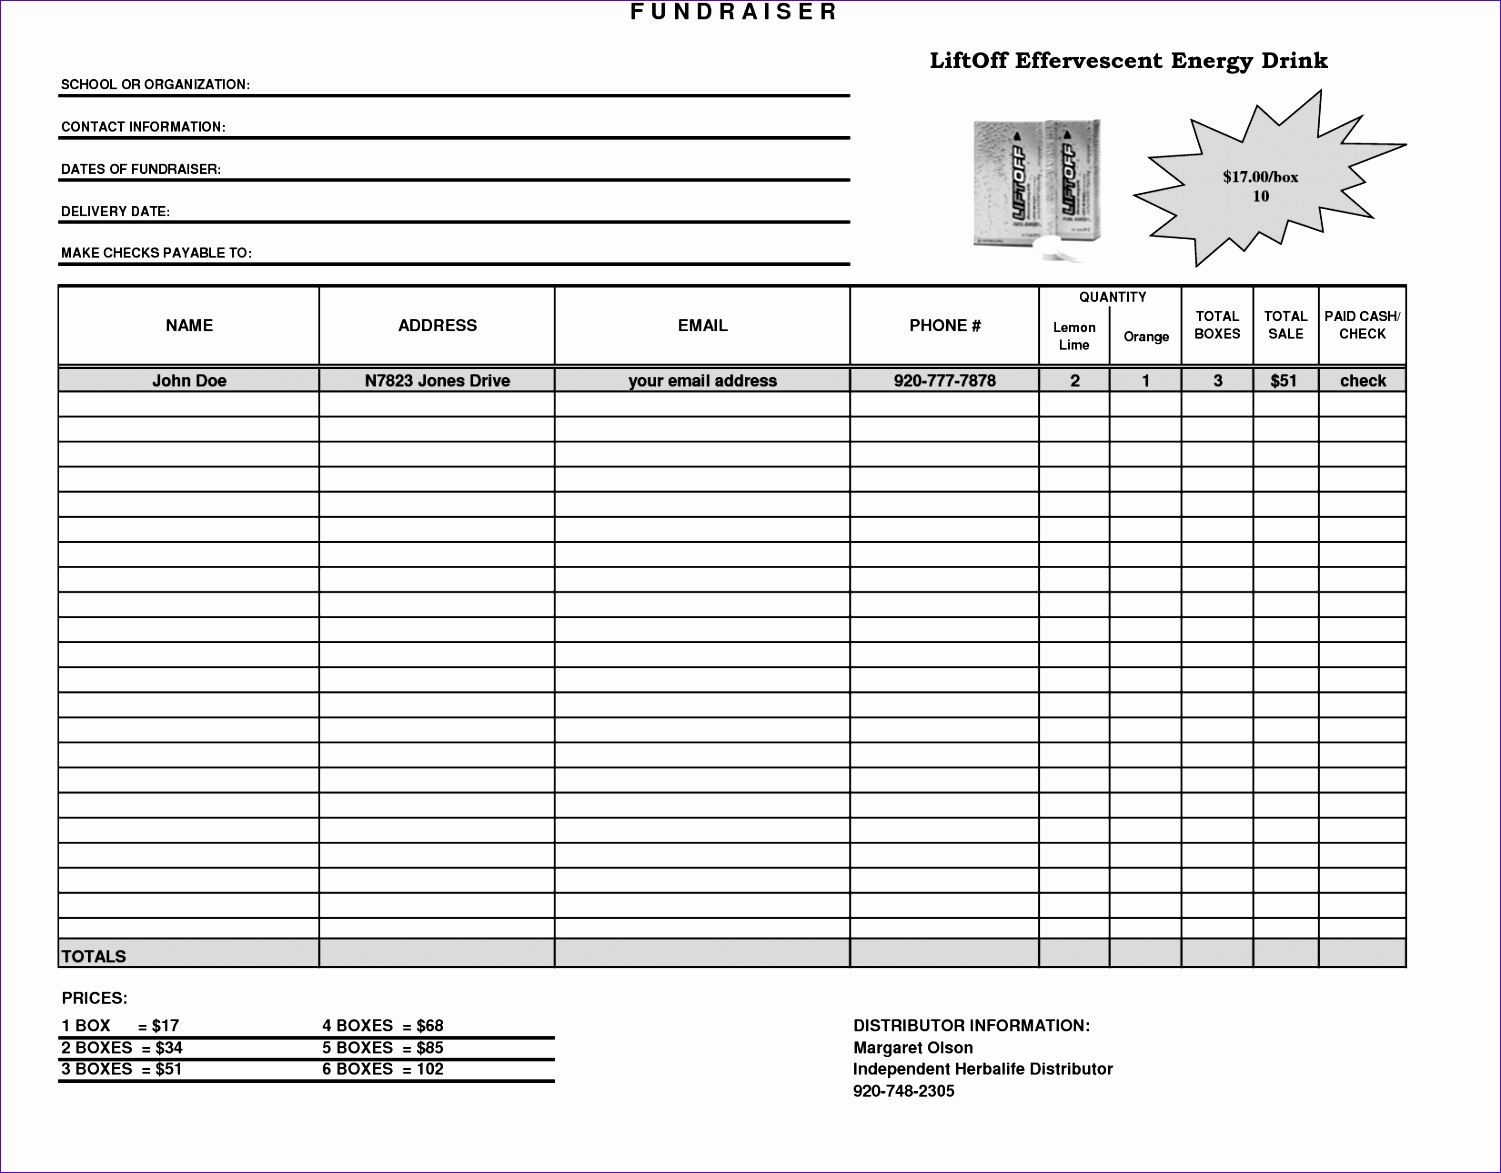 Making A Template In Excel Nrgve Unique Fundraiser Template Excel Fundraiser order form Template